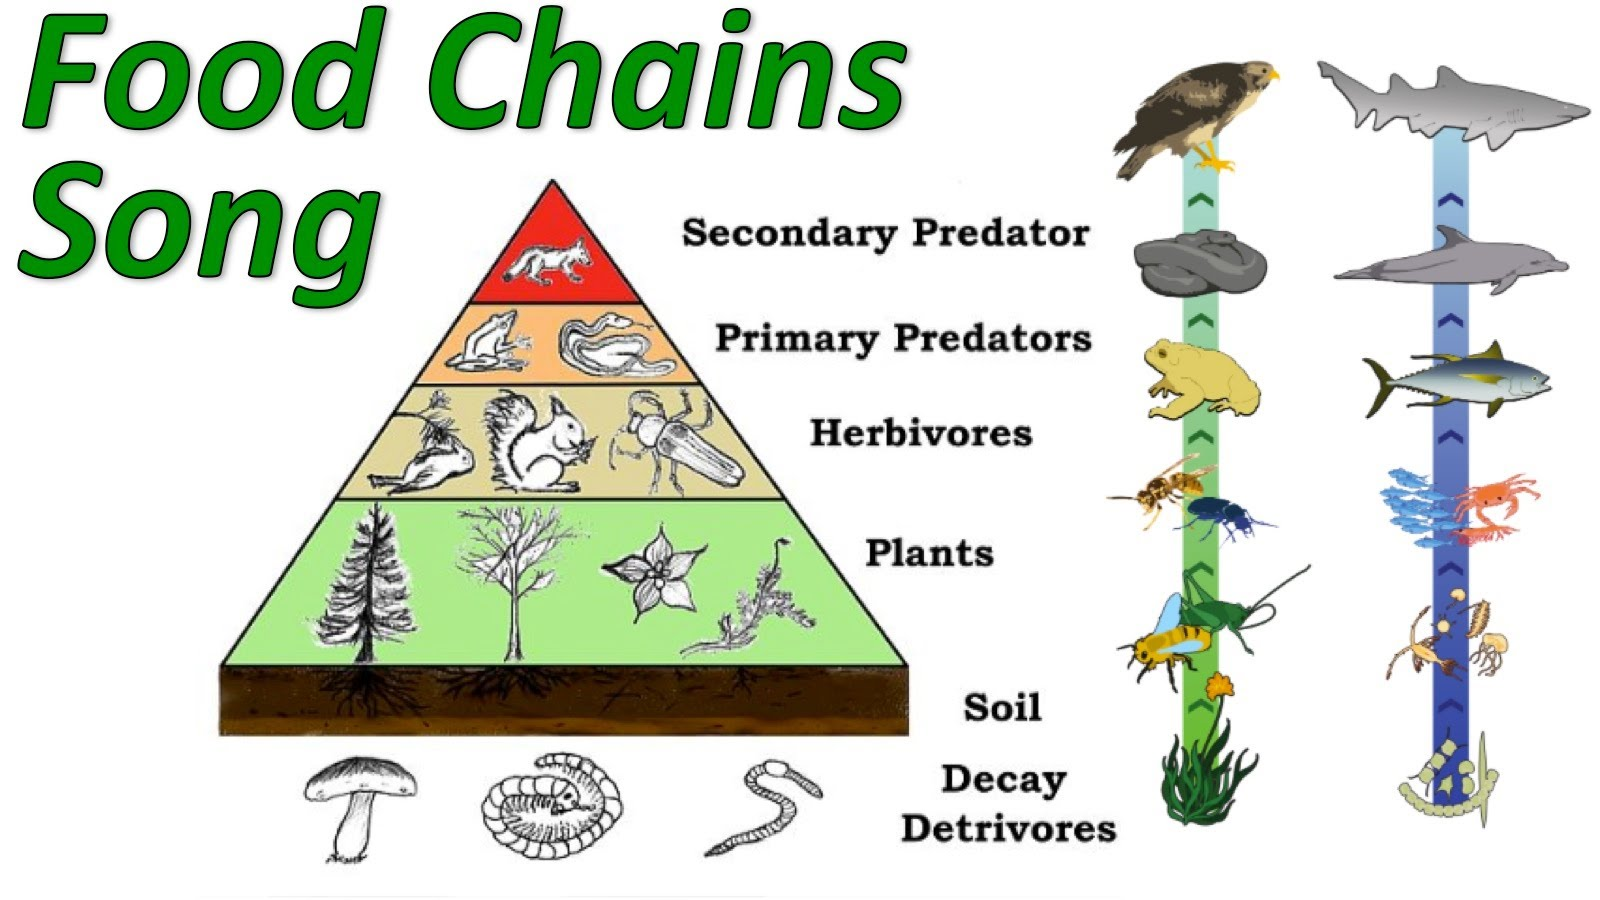 Thefoodweb furthermore Maxresdefault together with Hjwx Fjv additionally Rdprl P besides Soil Food Webusda. on wetland food chain example